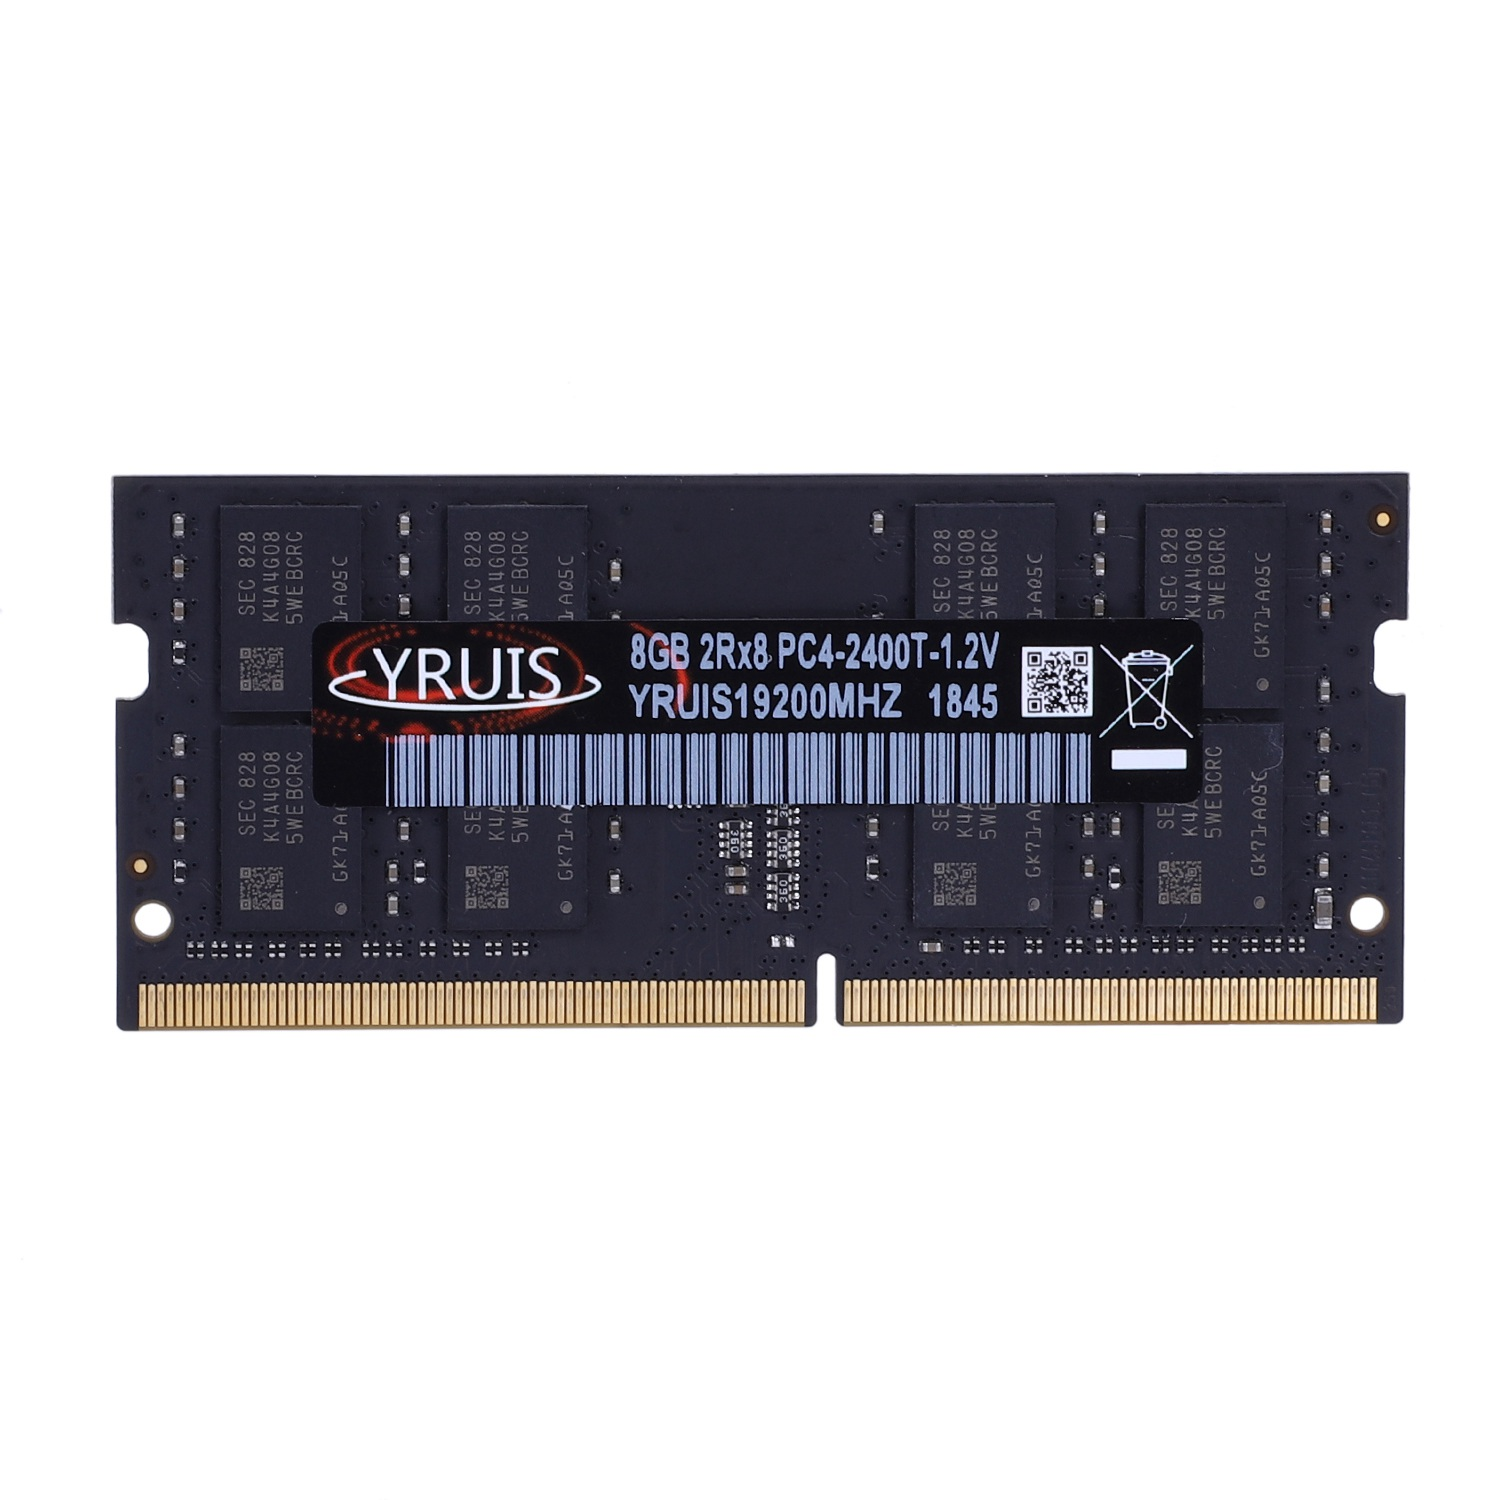 Yruis <font><b>Ddr4</b></font> 4G <font><b>8Gb</b></font> <font><b>2400Mhz</b></font> <font><b>Ram</b></font> Sodimm Laptop Memory Support Memoria <font><b>Ddr4</b></font> Notebook(1.2V) image